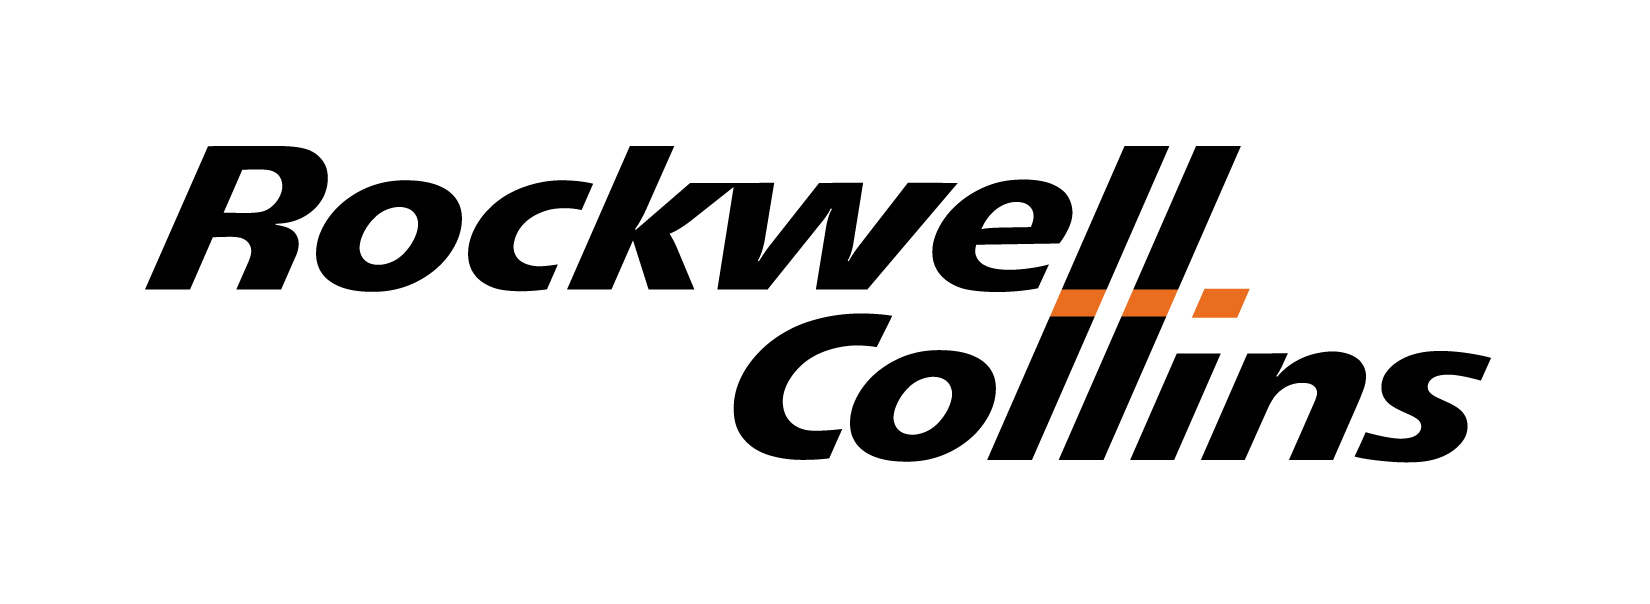 B Rockwell Collins